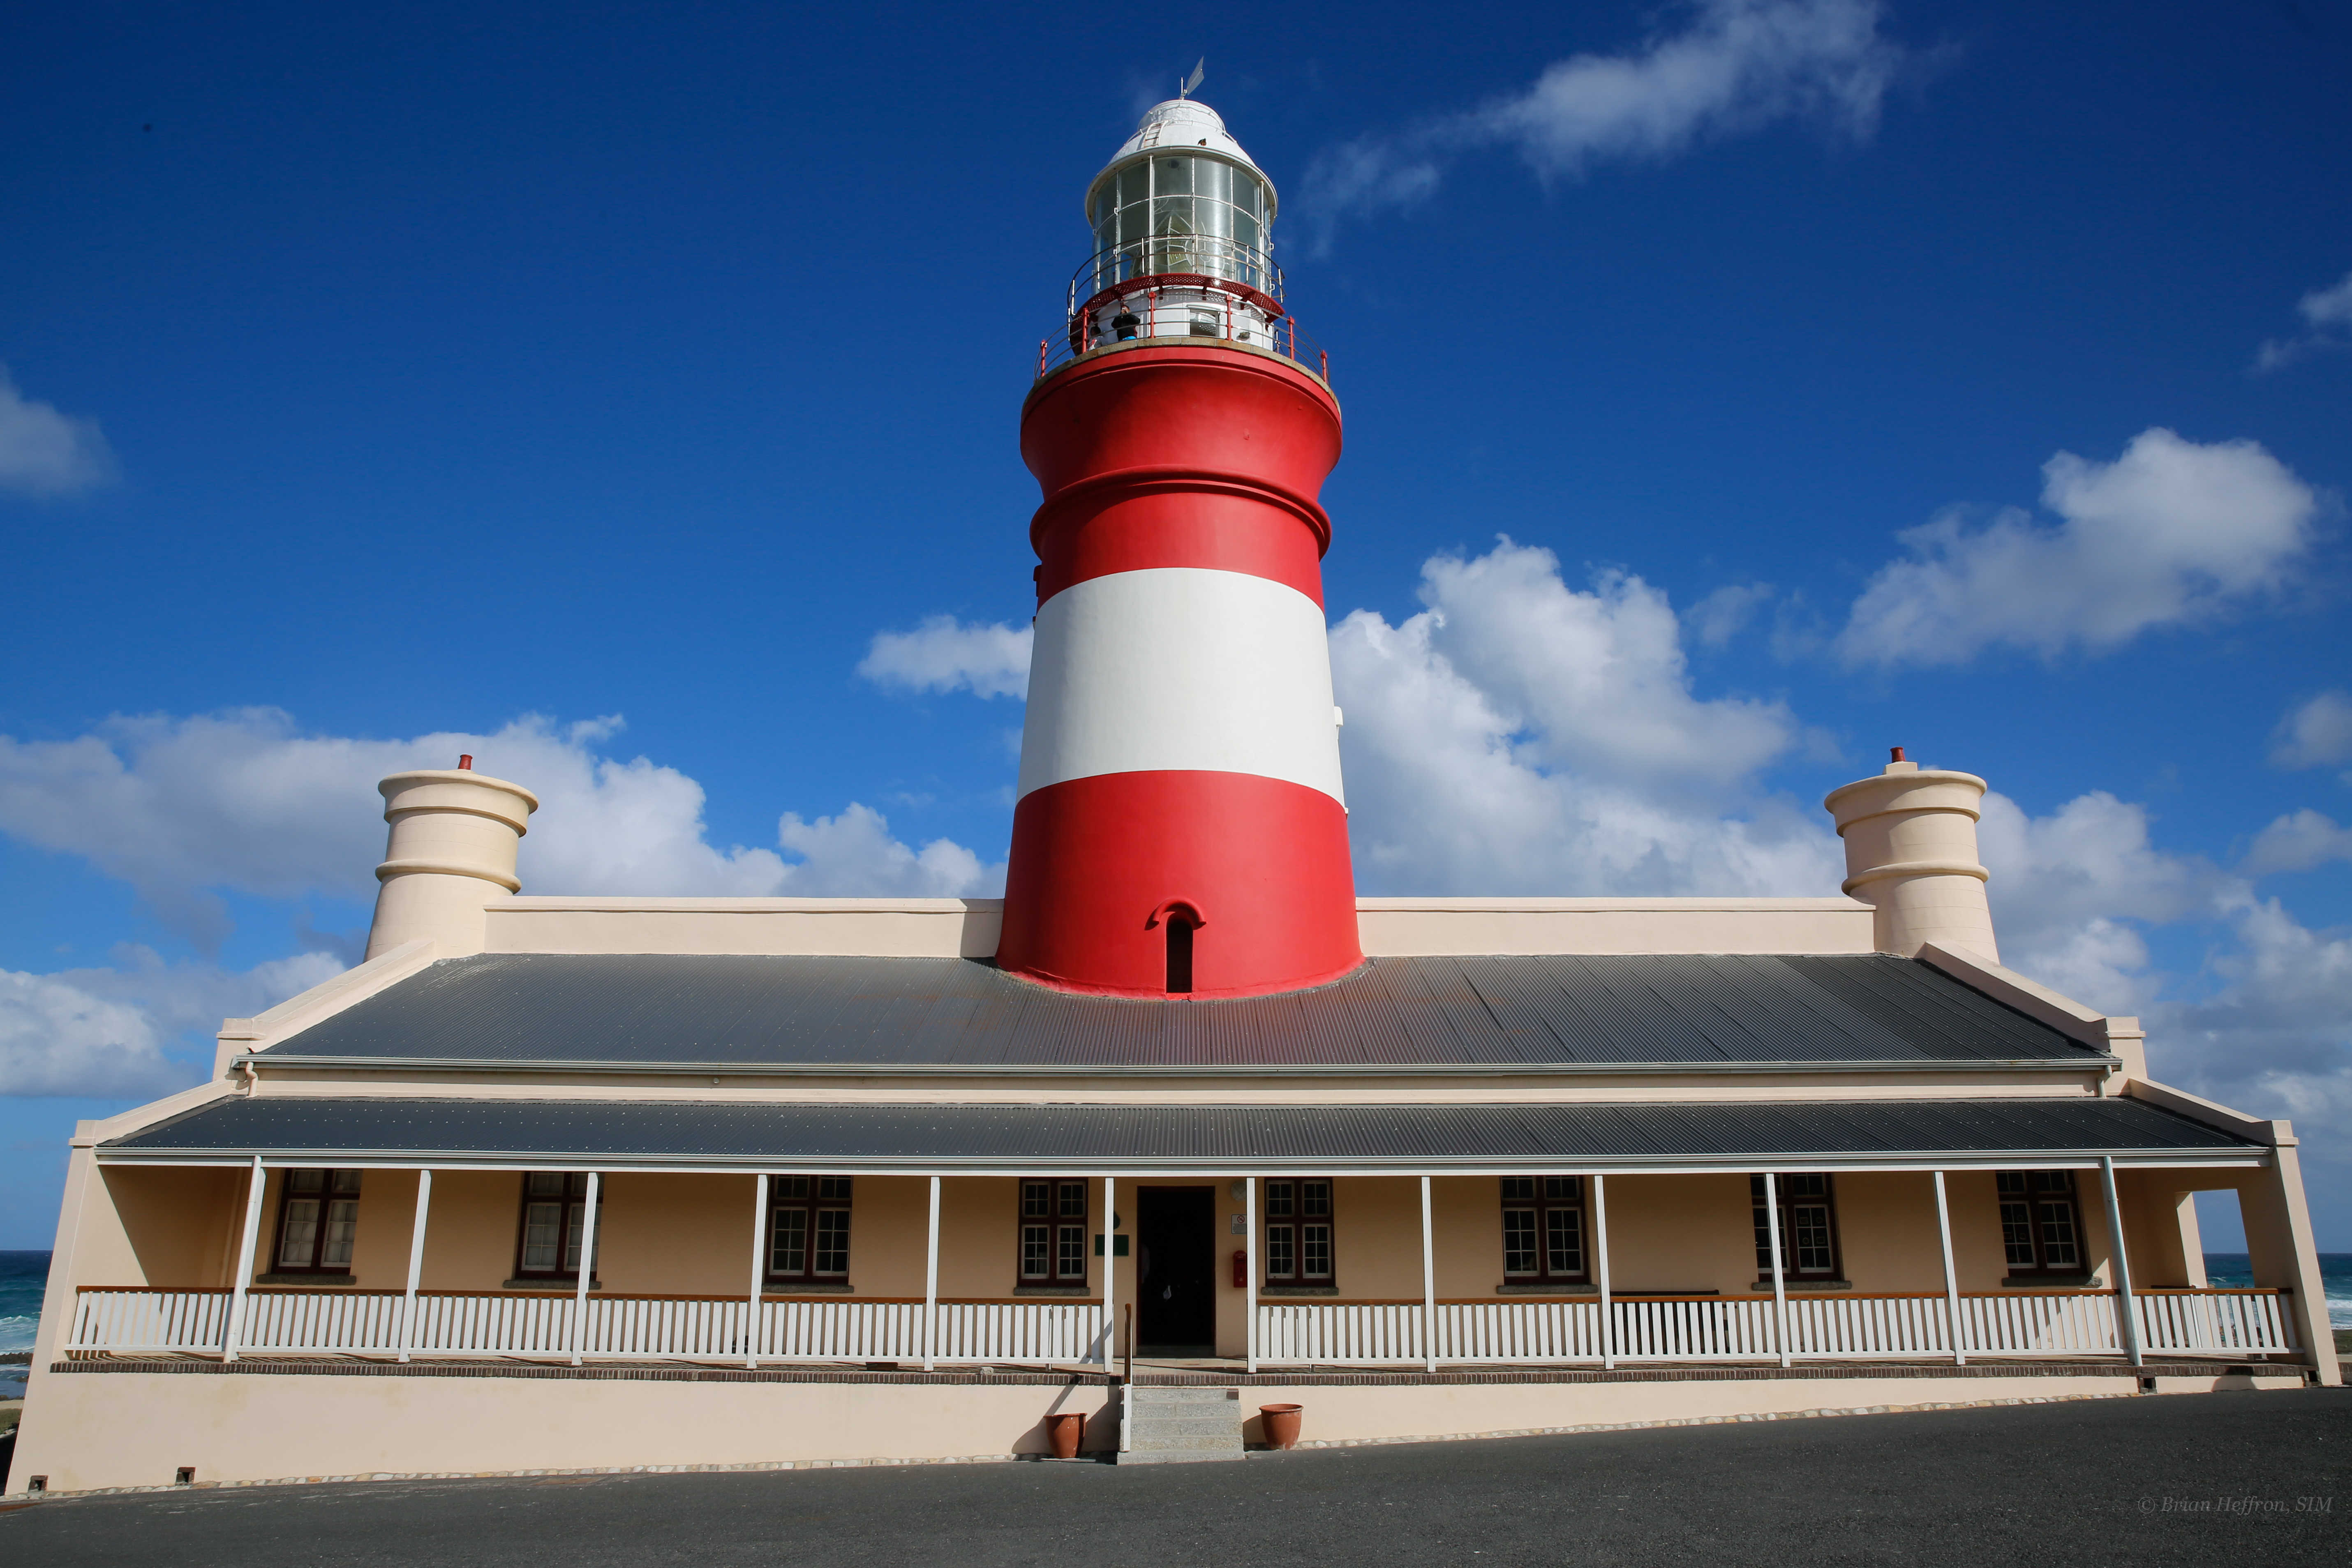 The Cape Agulhas light house reminds us to always rely on God's steadfast light and guidance in any storm.